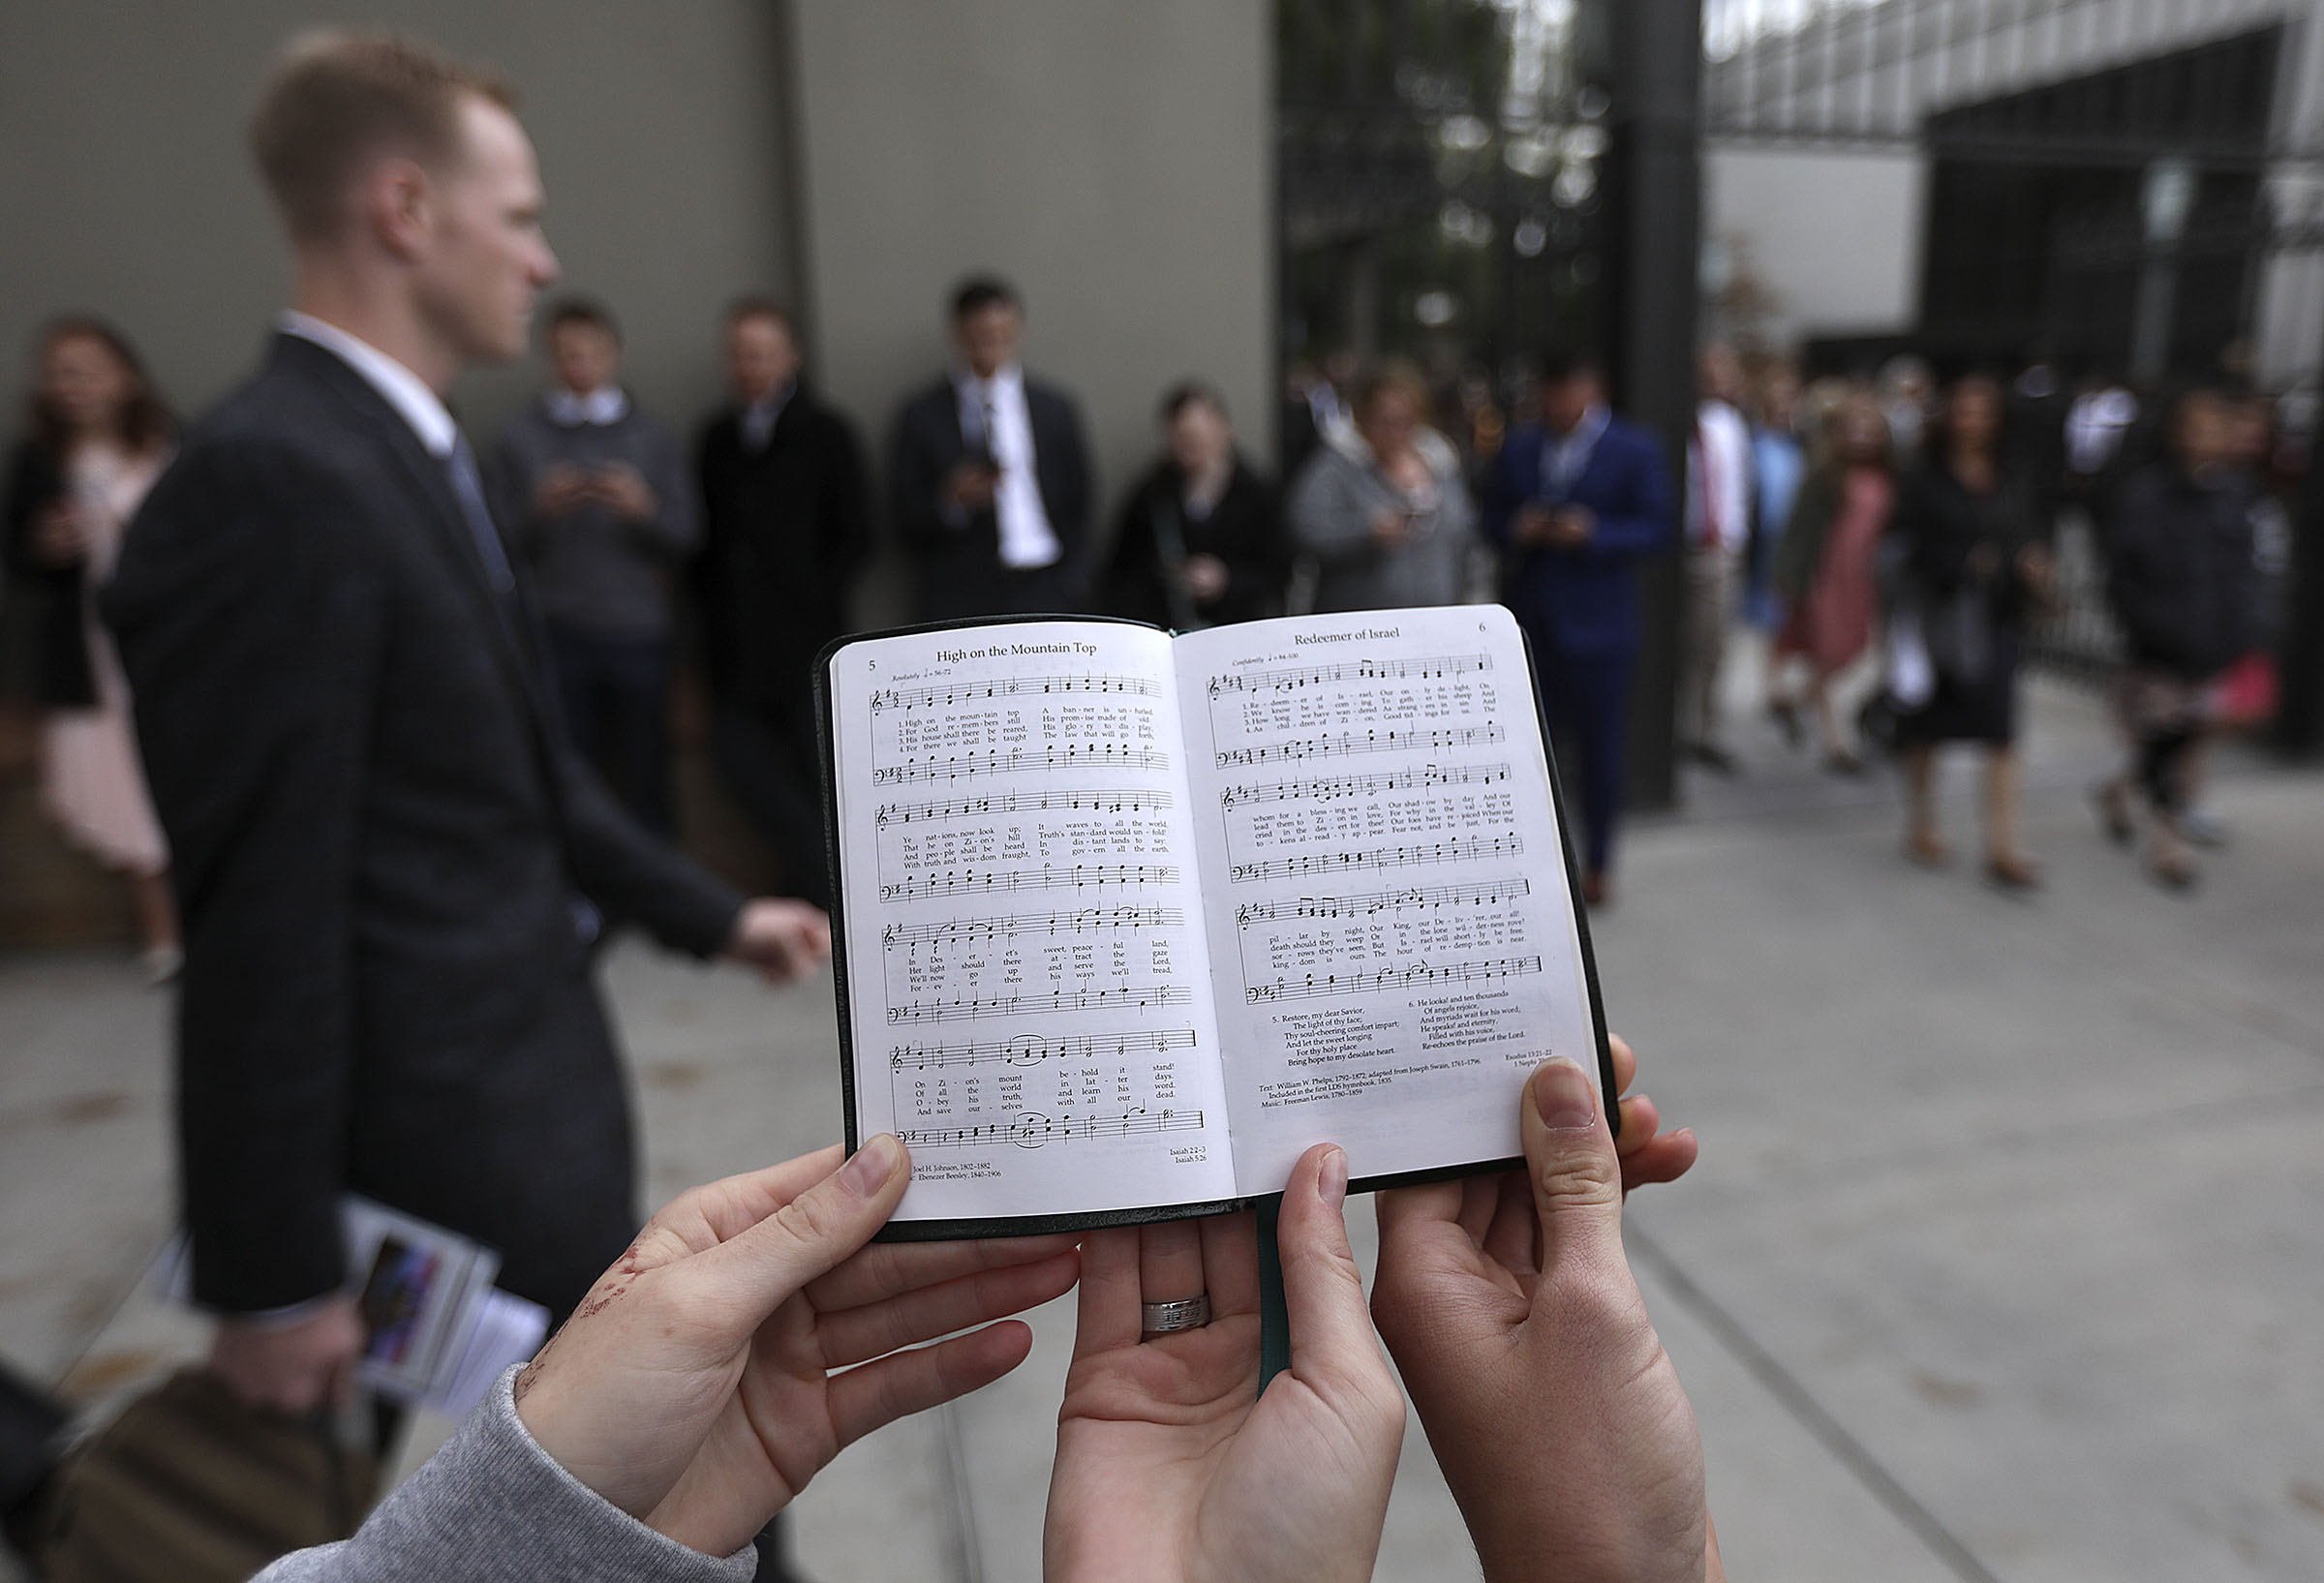 Ryan Aust and Rebecca Sherrill sing hymns with other members of the Logan Young Single Adults First Stake between sessions of the 188th Semiannual General Conference of The Church of Jesus Christ of Latter-day Saints outside of Temple Square in downtown Salt Lake City on Sunday, Oct. 7, 2018.